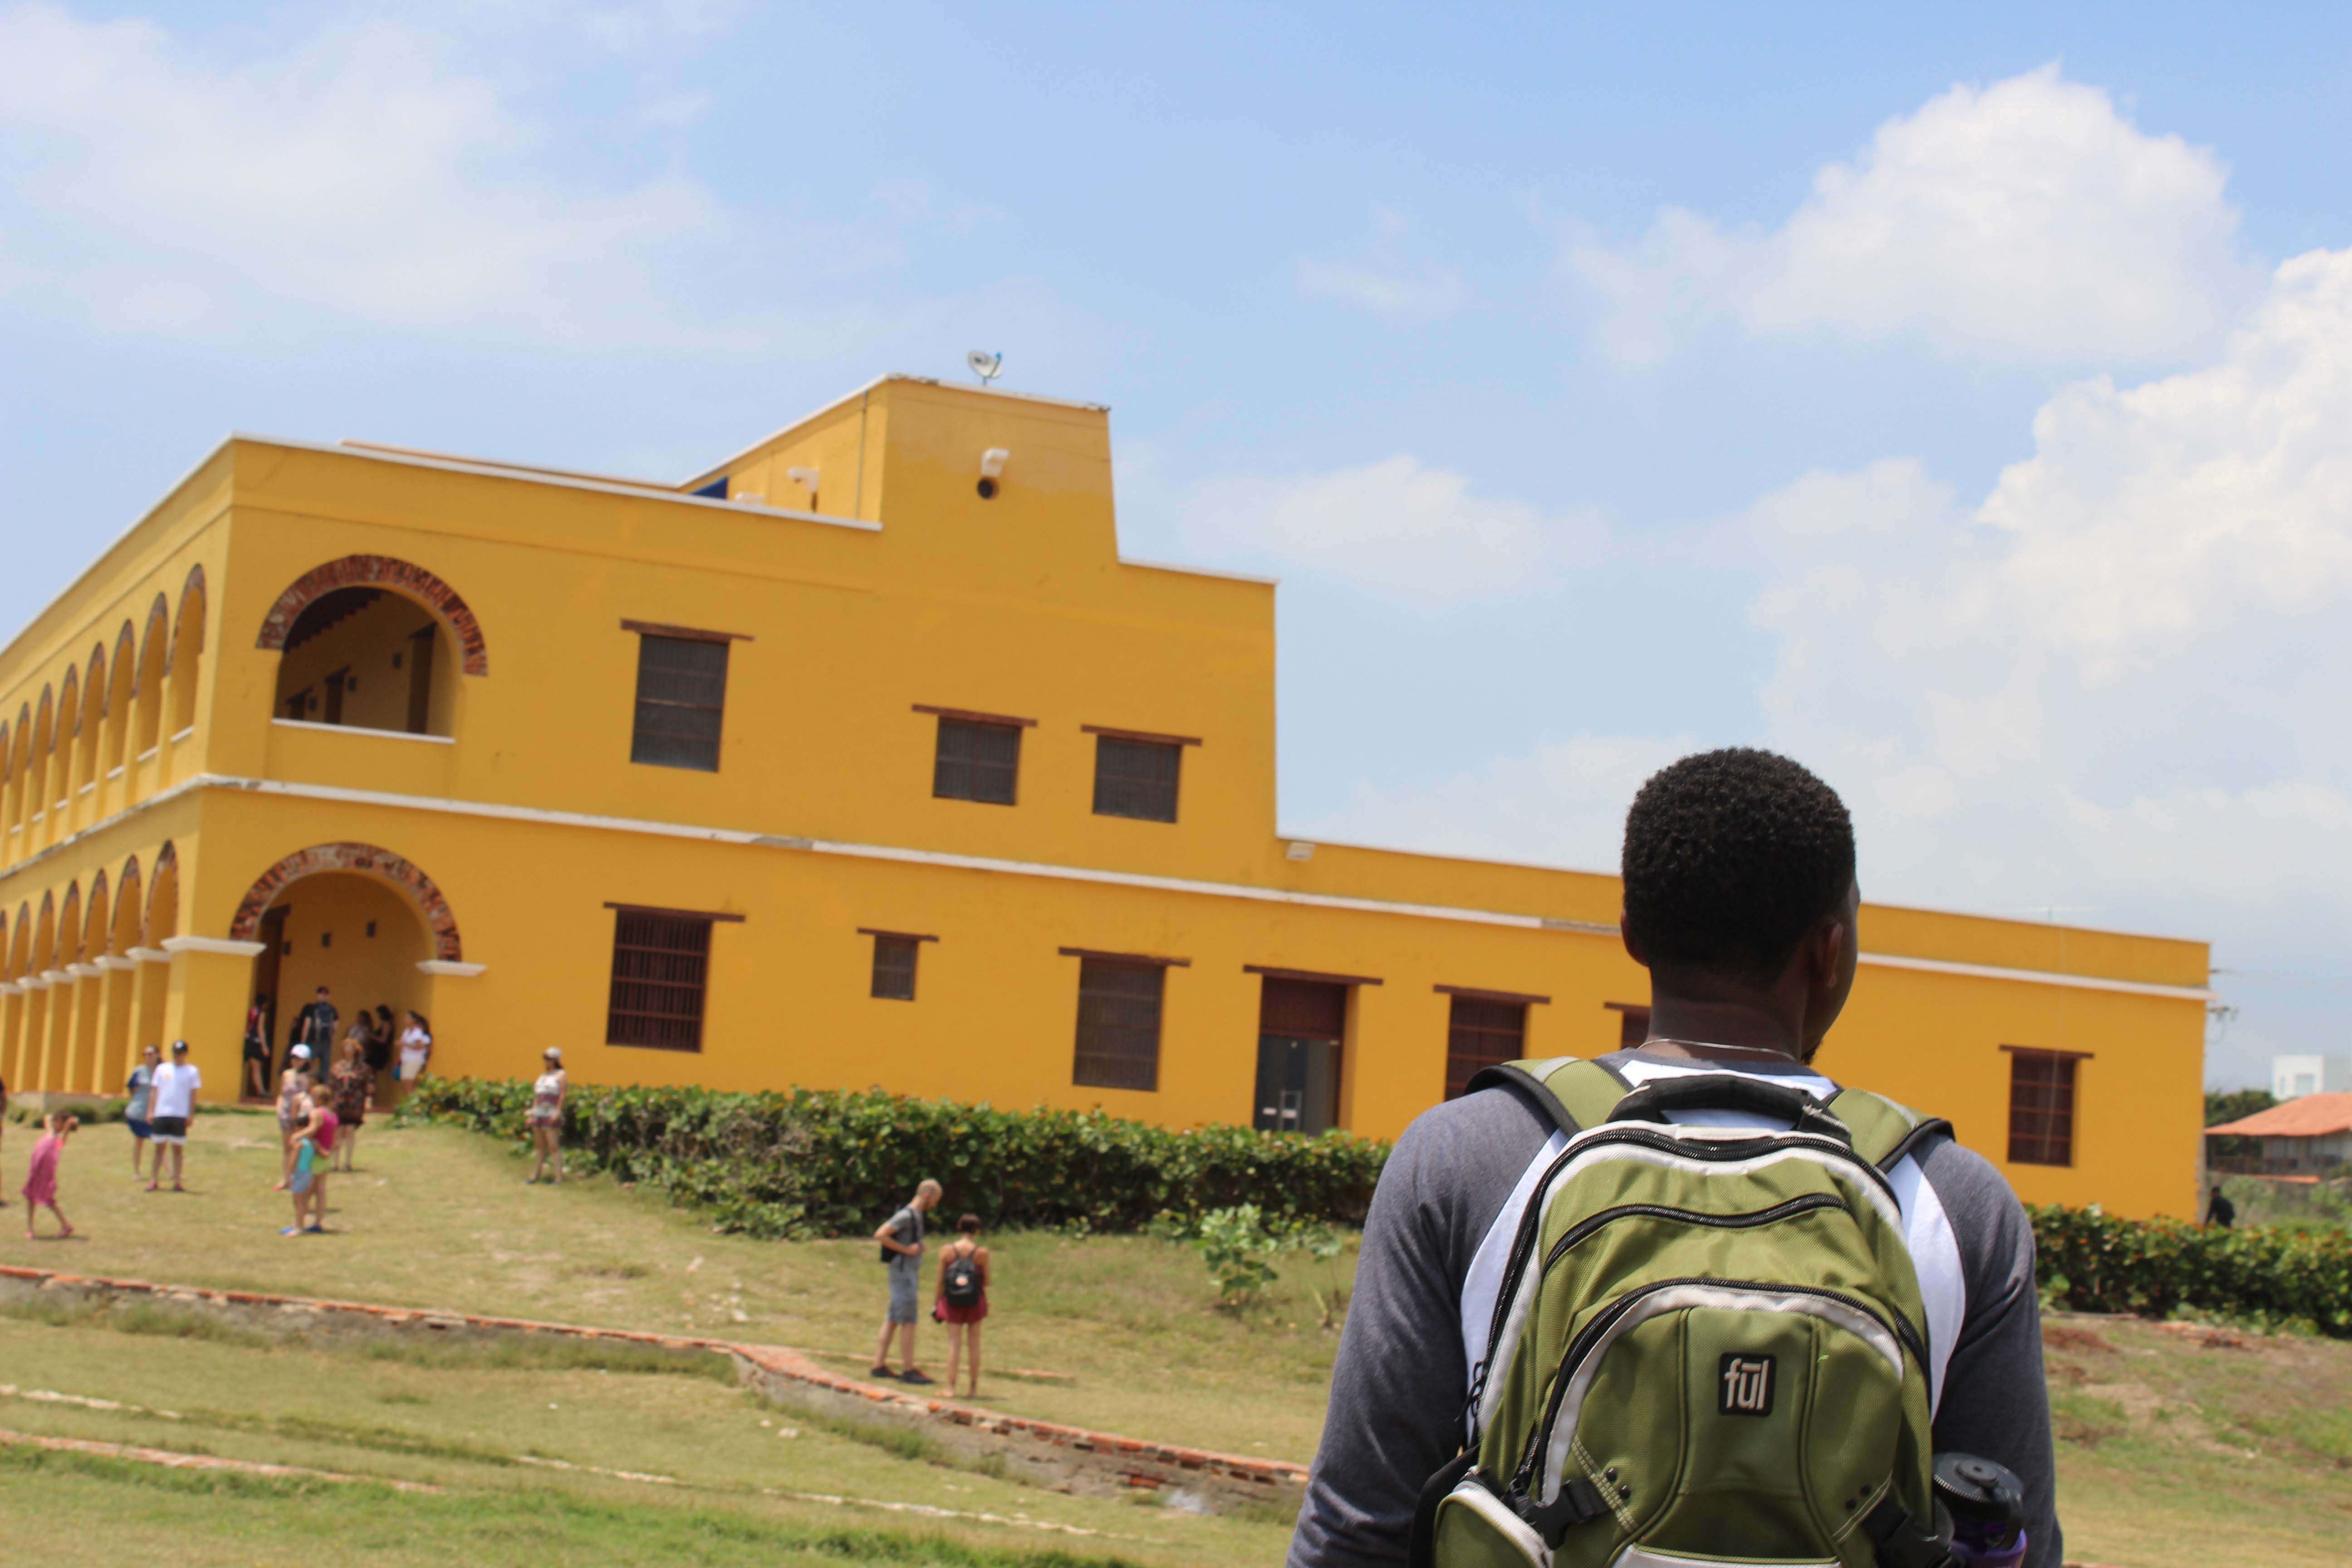 Student approaches a foreign building